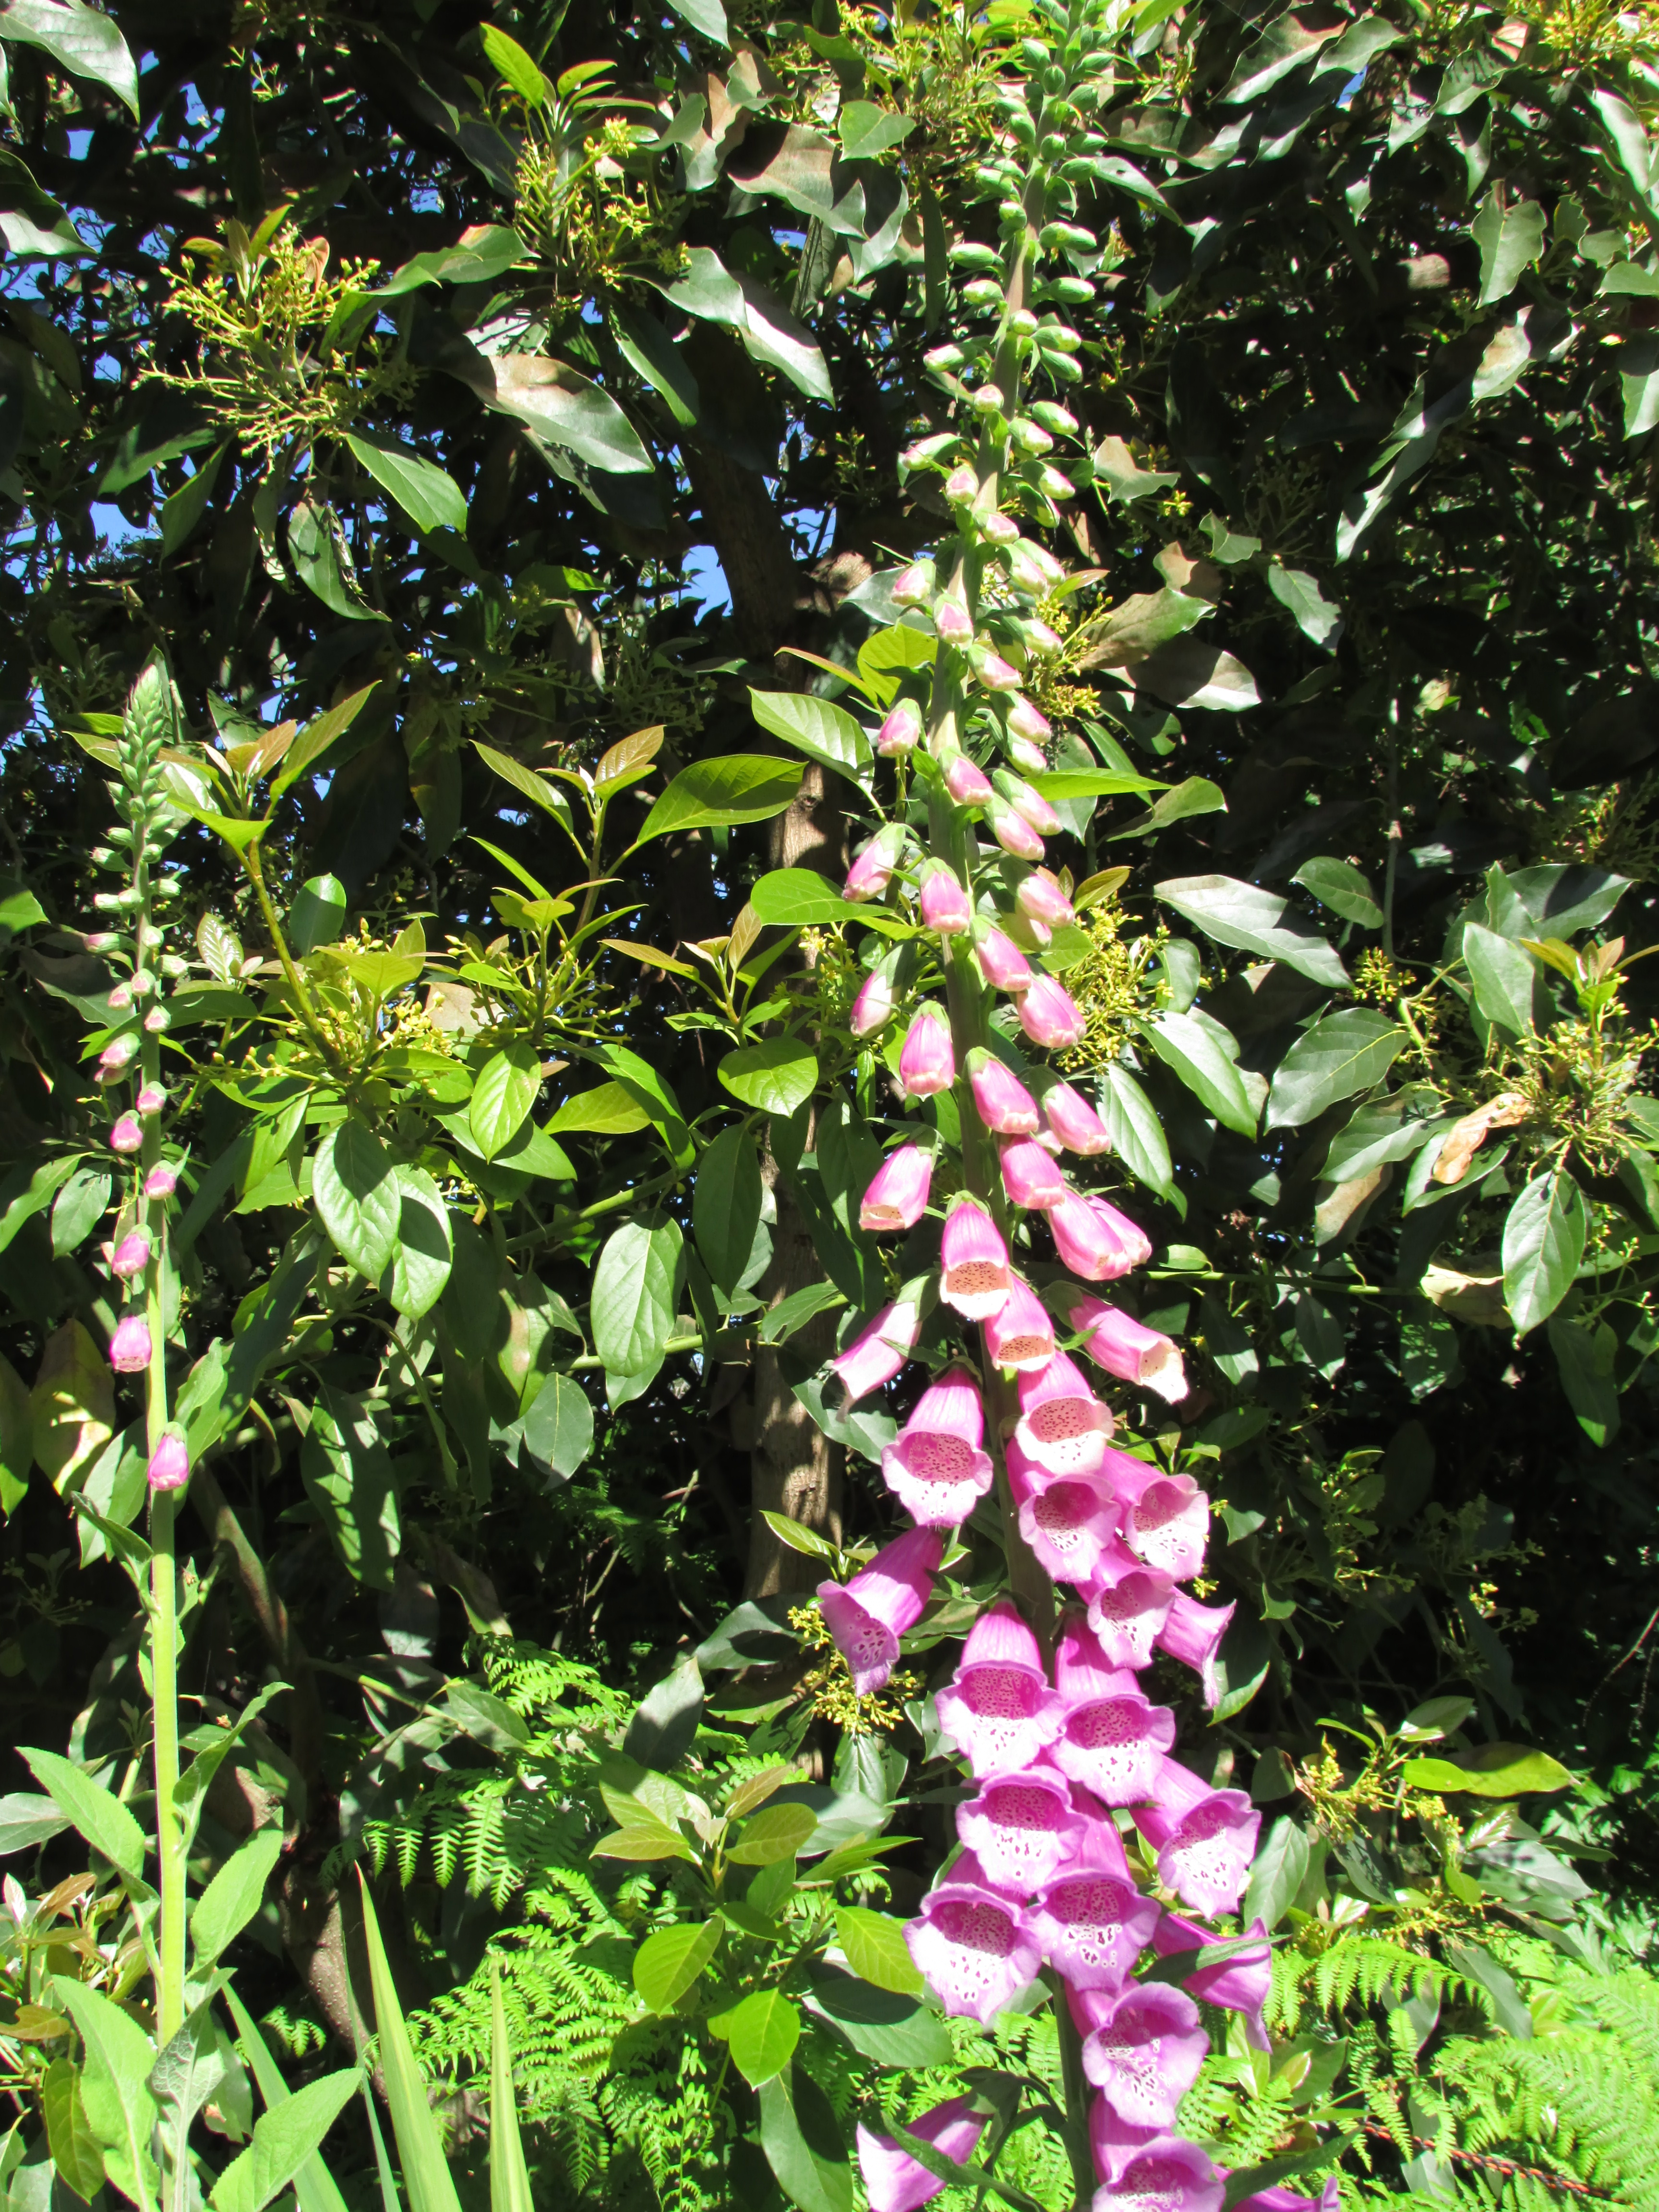 Add Medicinal Plants: Foxglove